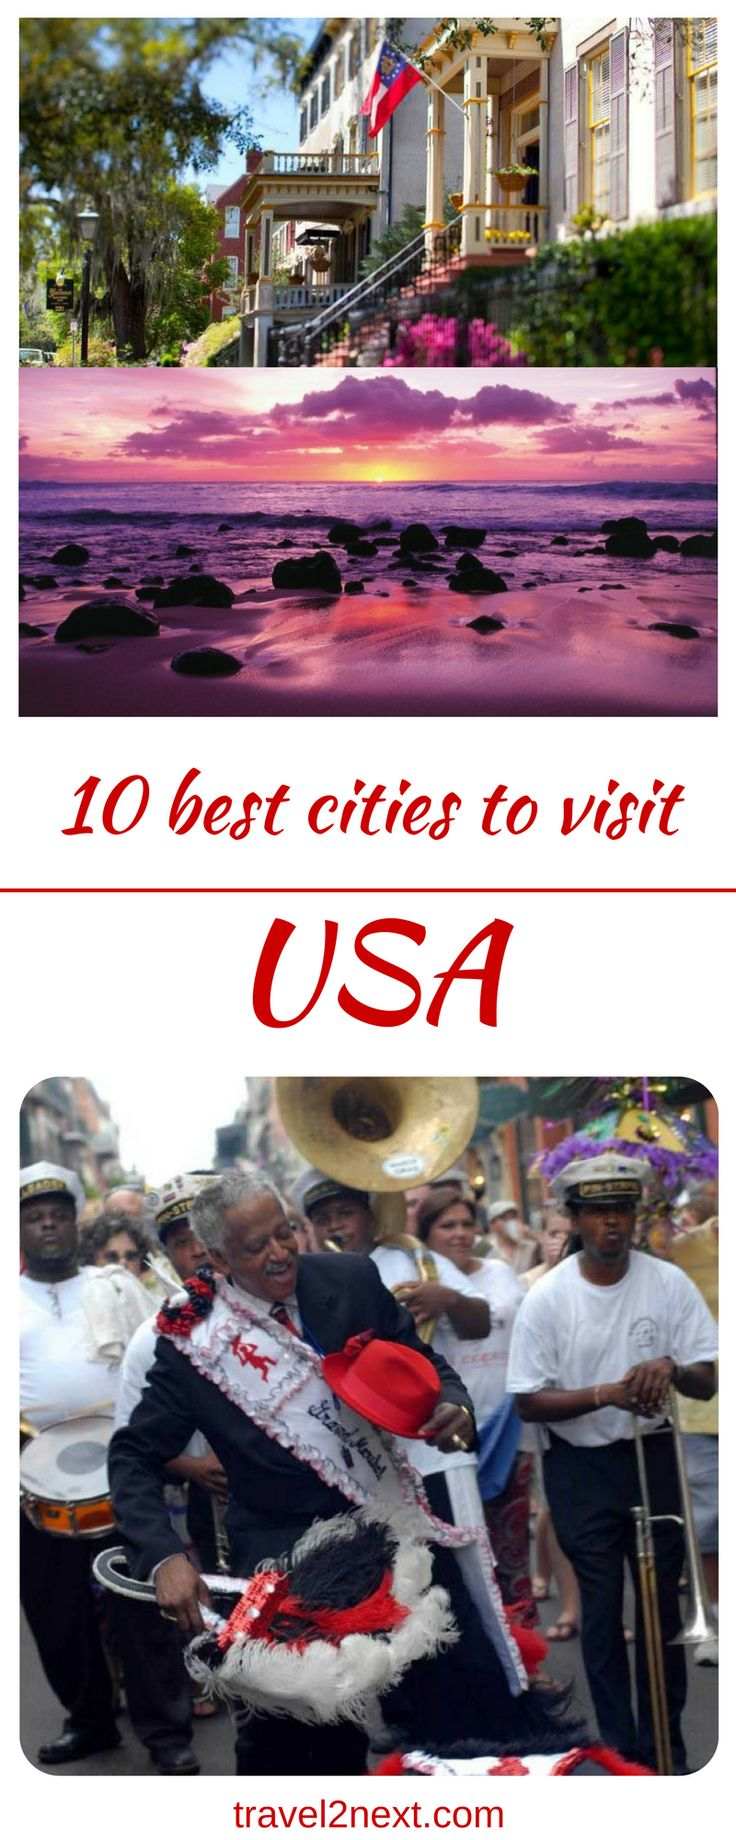 10 best cities to visit in the USA. With 50 states and hundreds of cities, the USA is a smorgasbord for travellers.